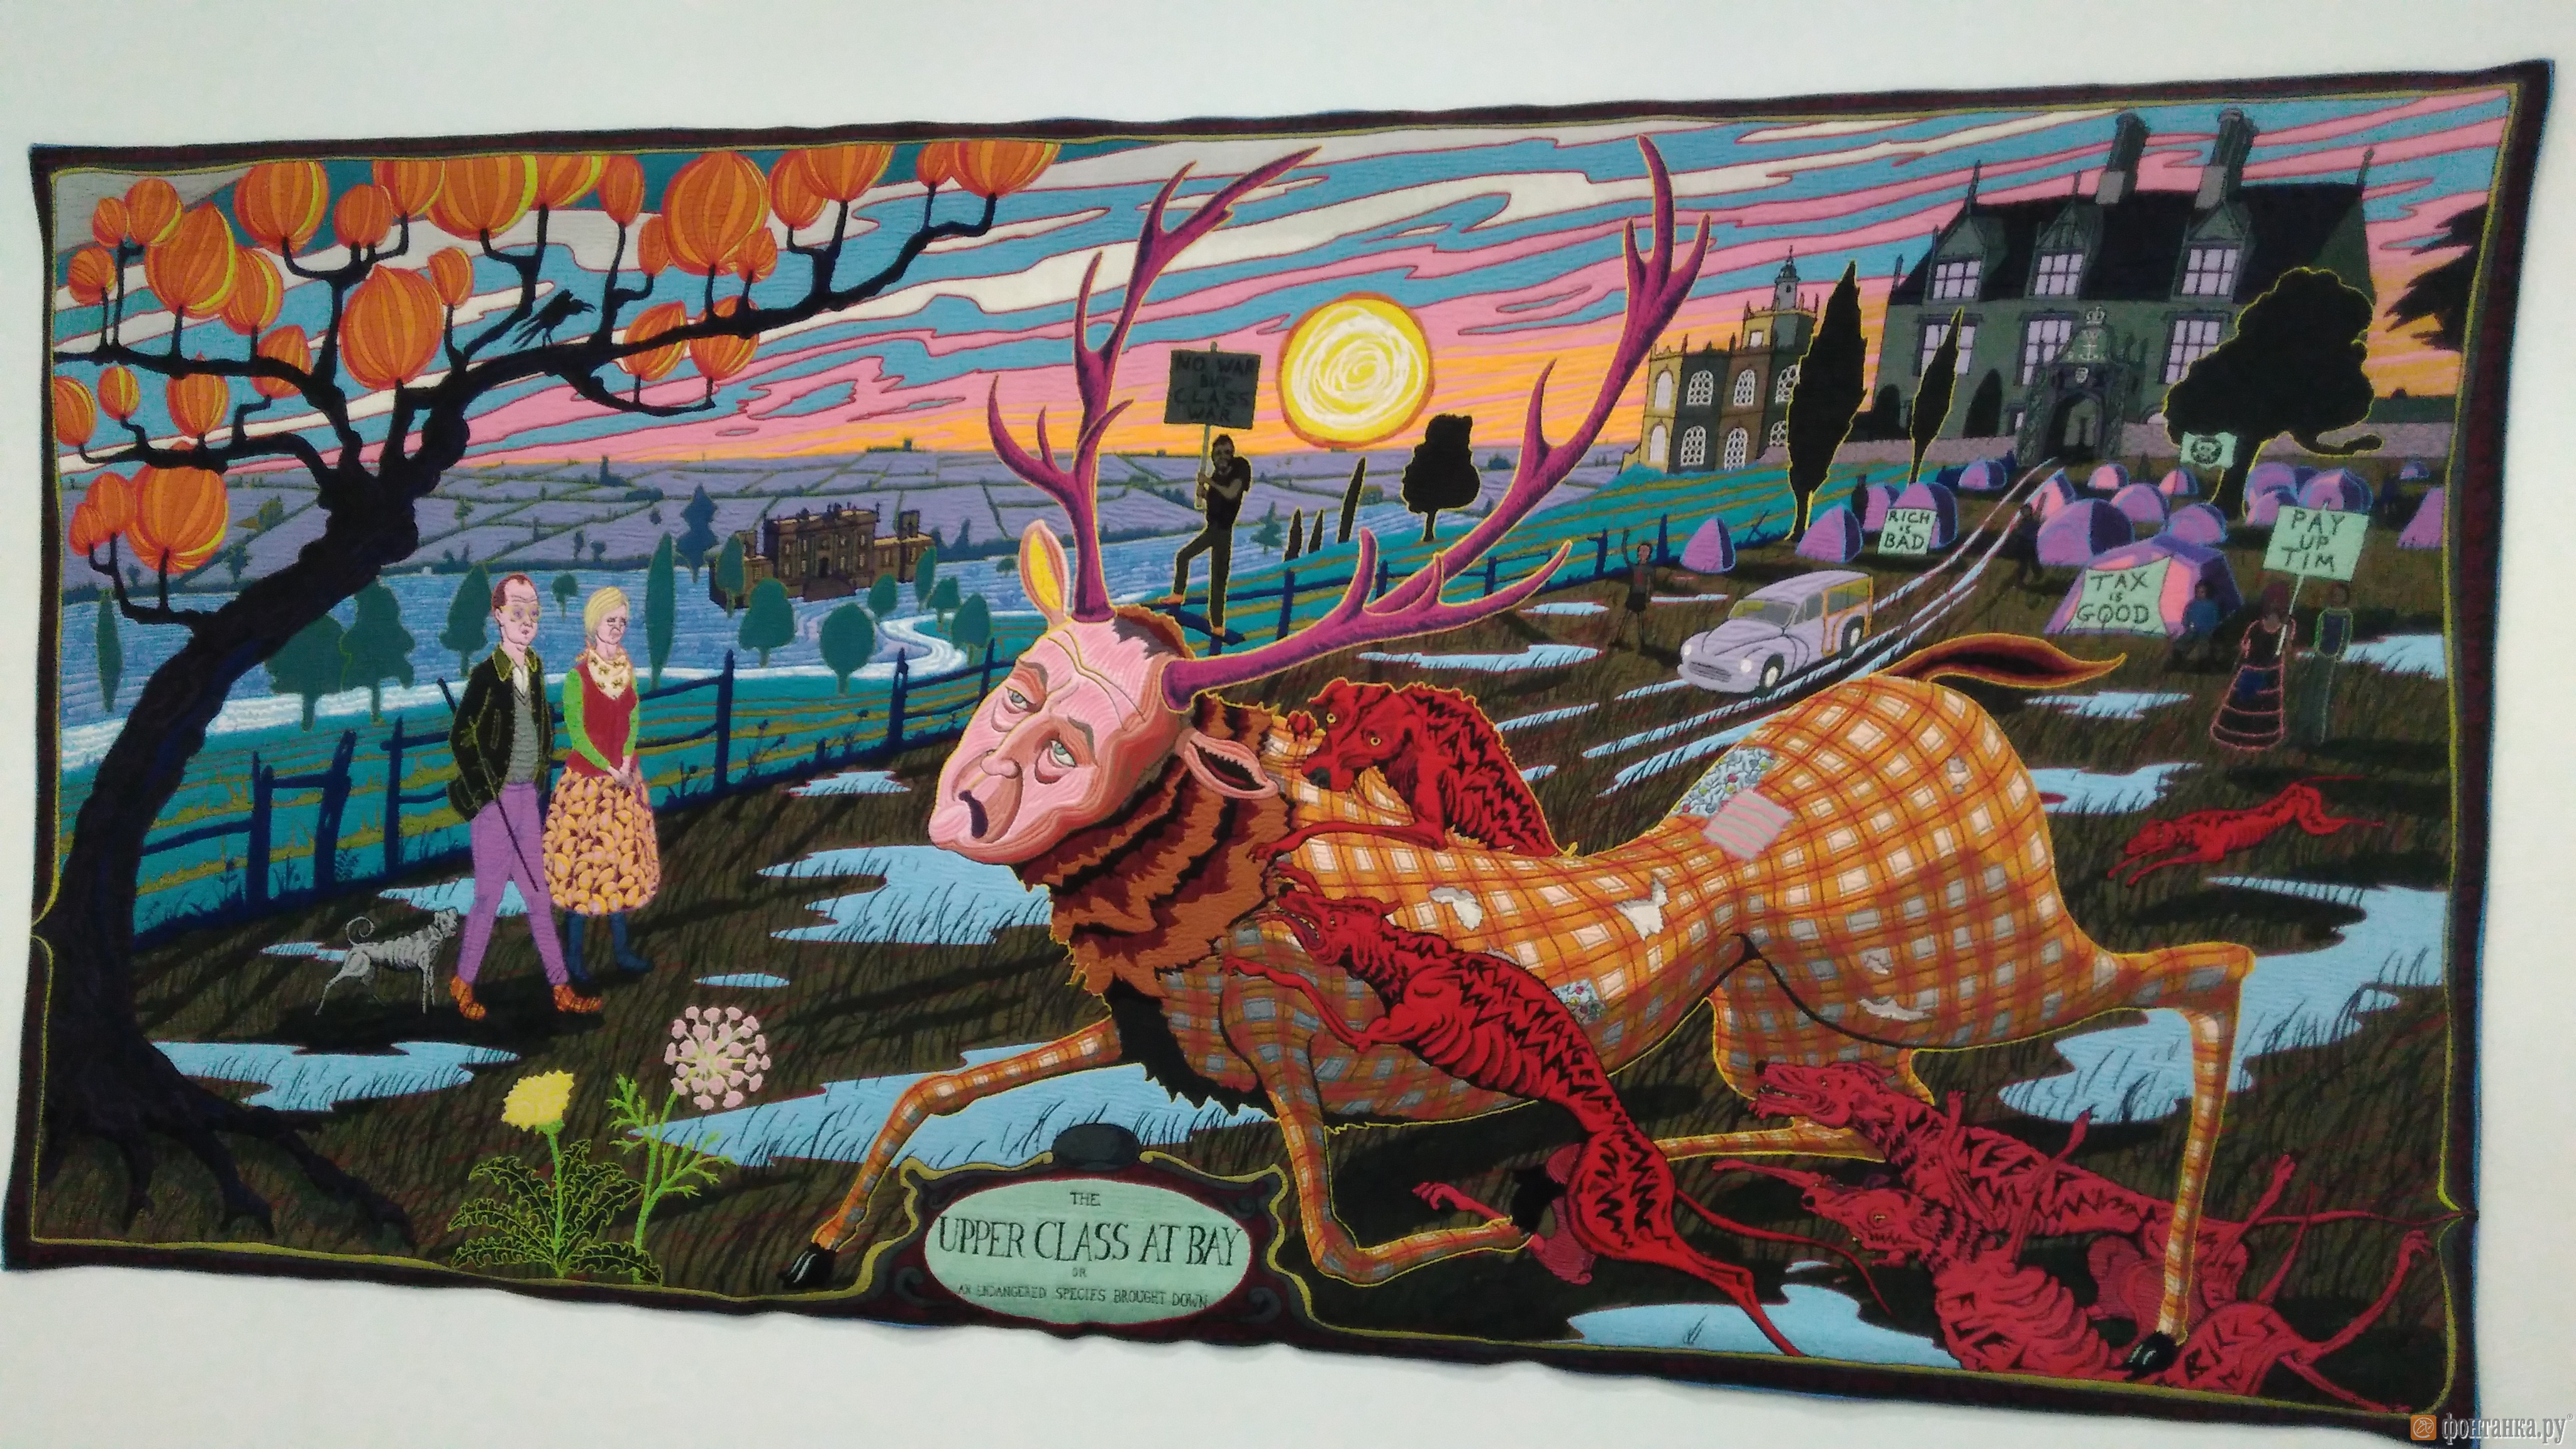 The Upper Class at Bay - Grayson Perry